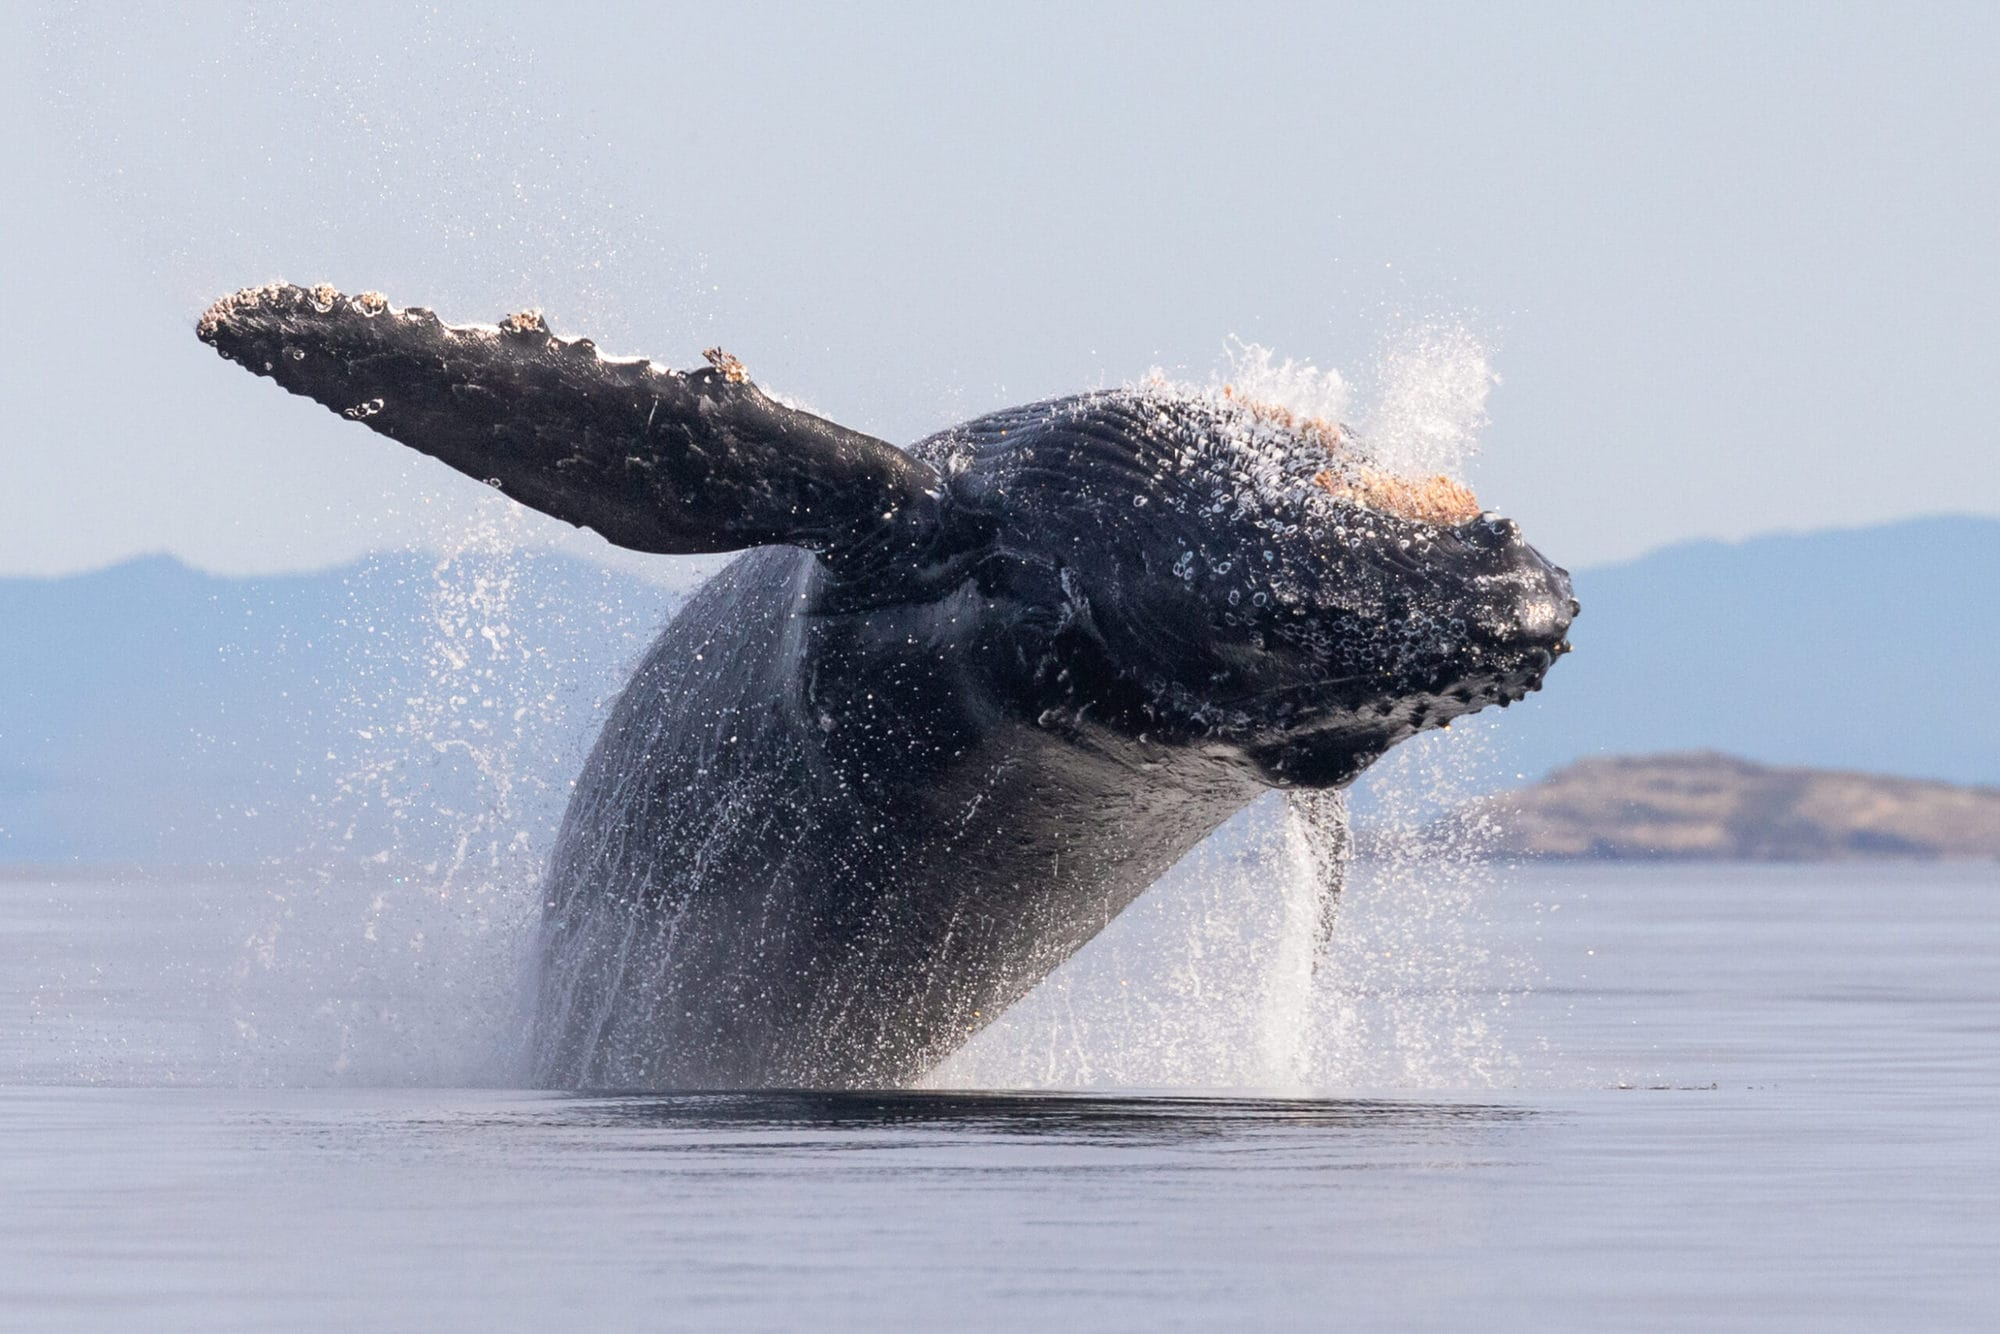 Close up of Humpback Whale Breaching towards camera in calm water. There is a small island in the background.